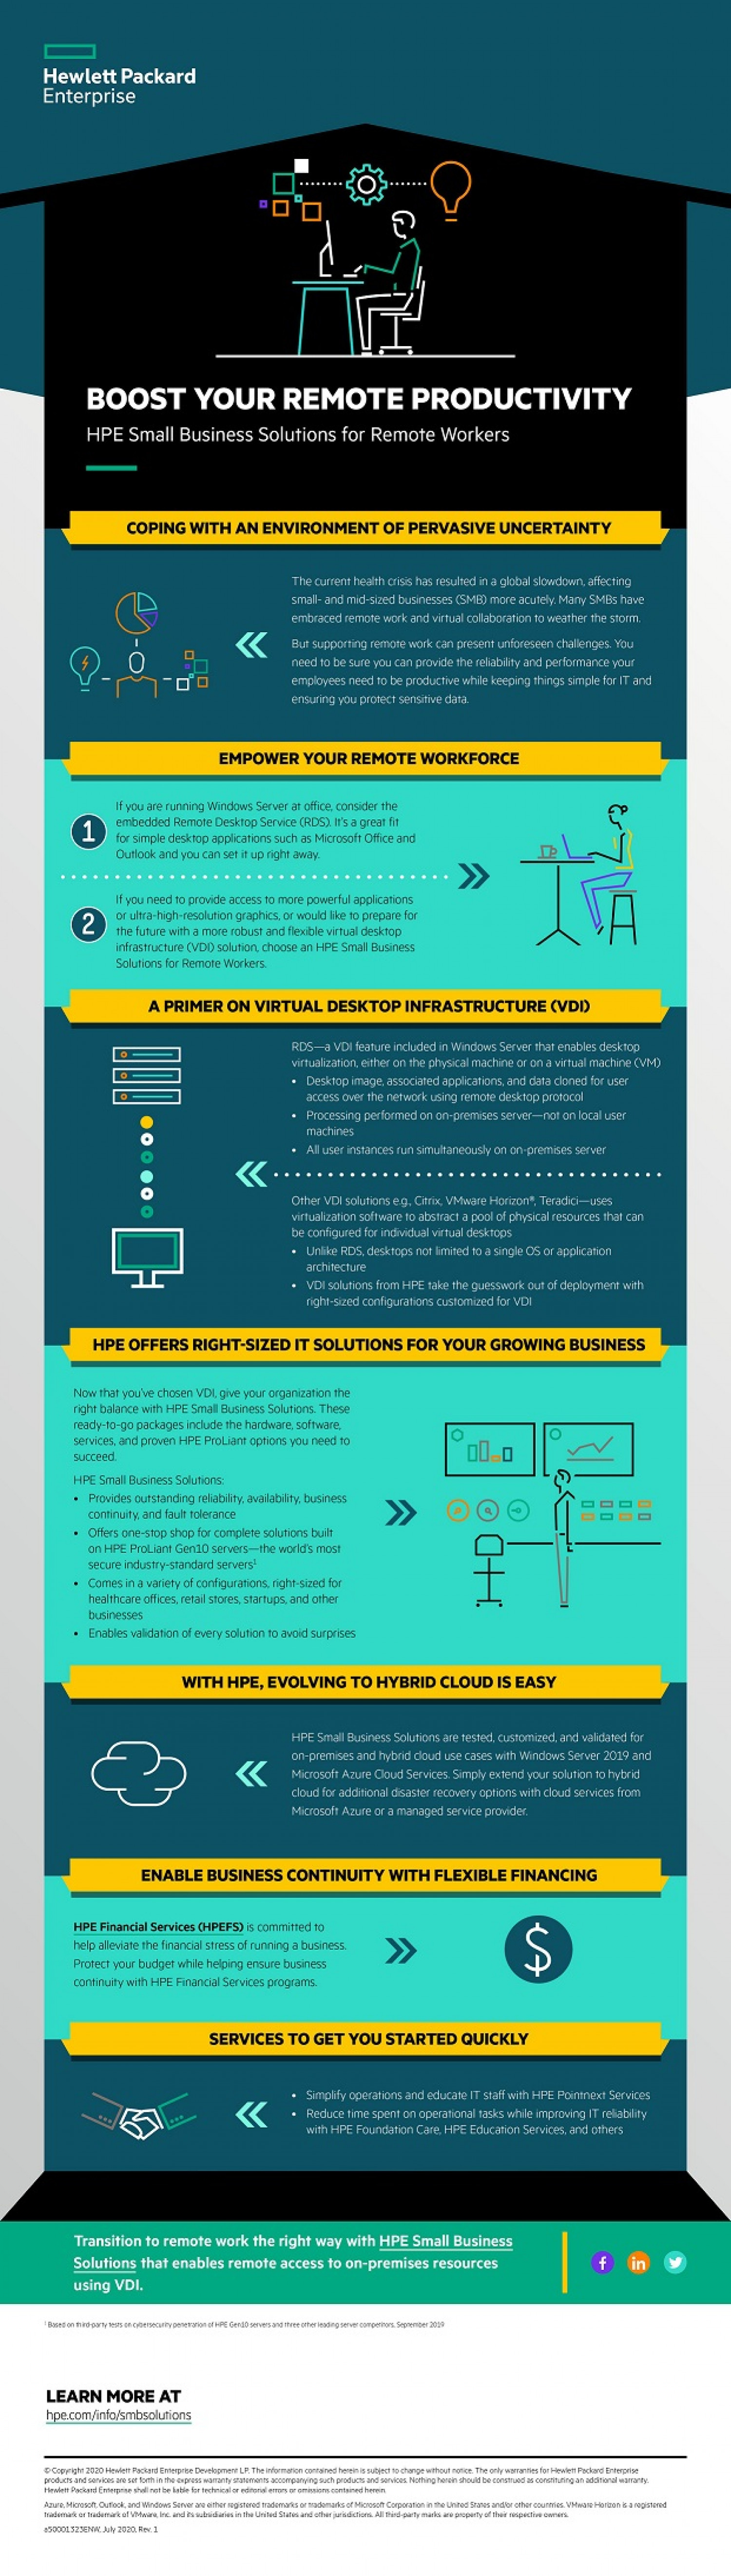 HPE SMB Solutions - Boost your Remote Productivity Infographic